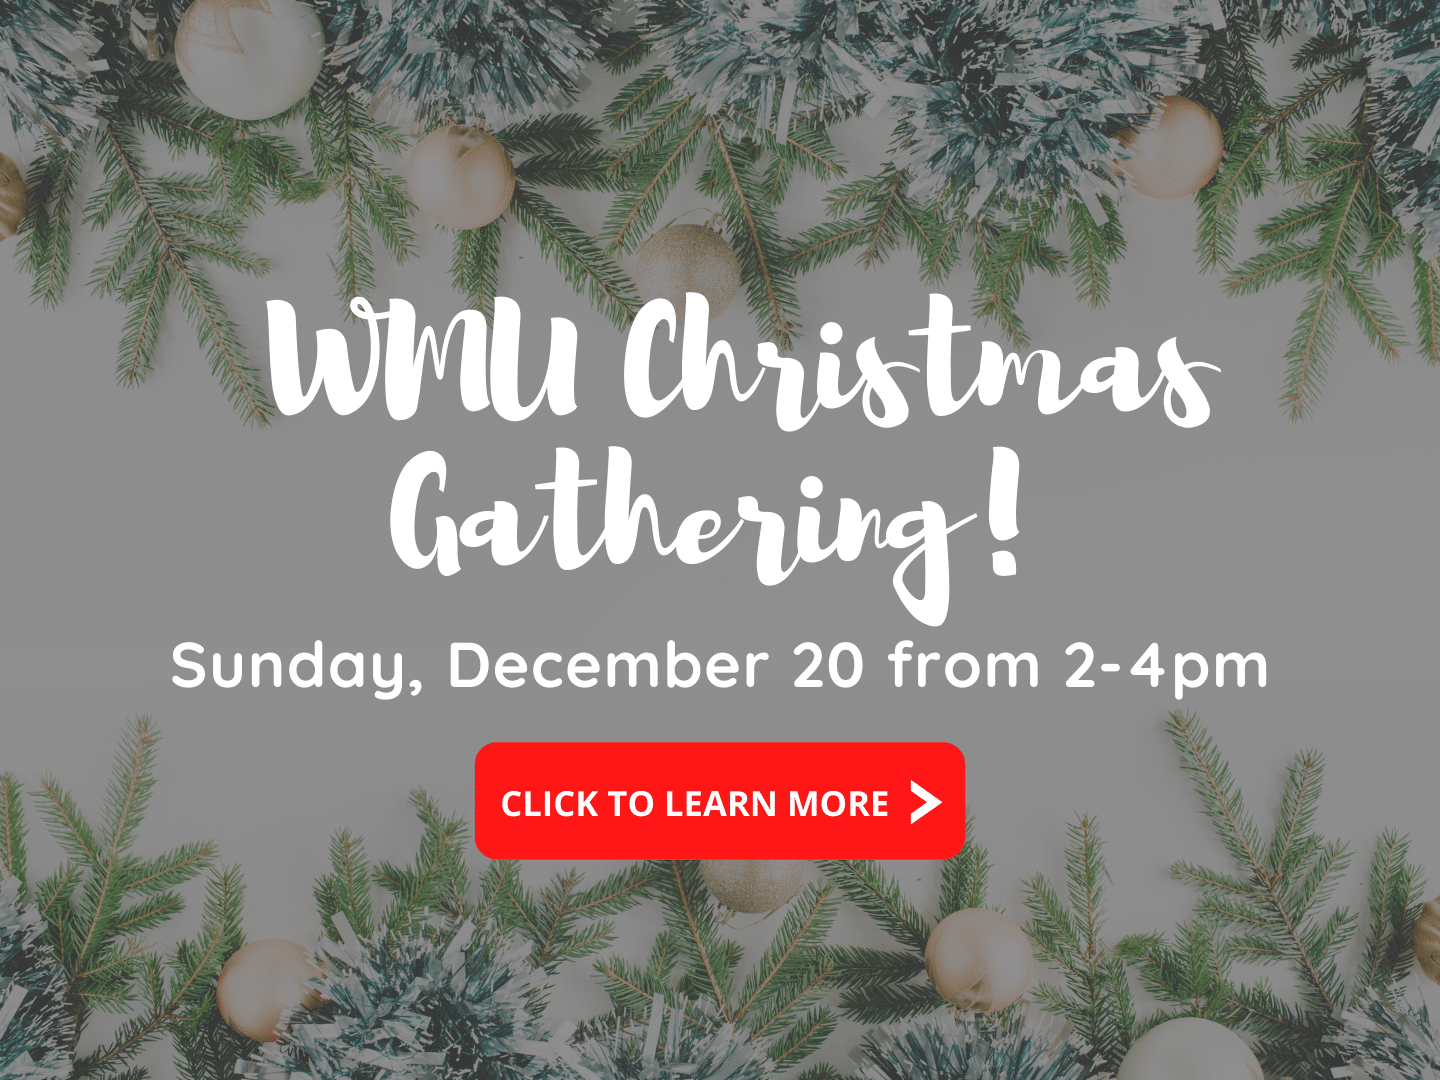 WMU Christmas Gathering | Aberdeen First Baptist Church